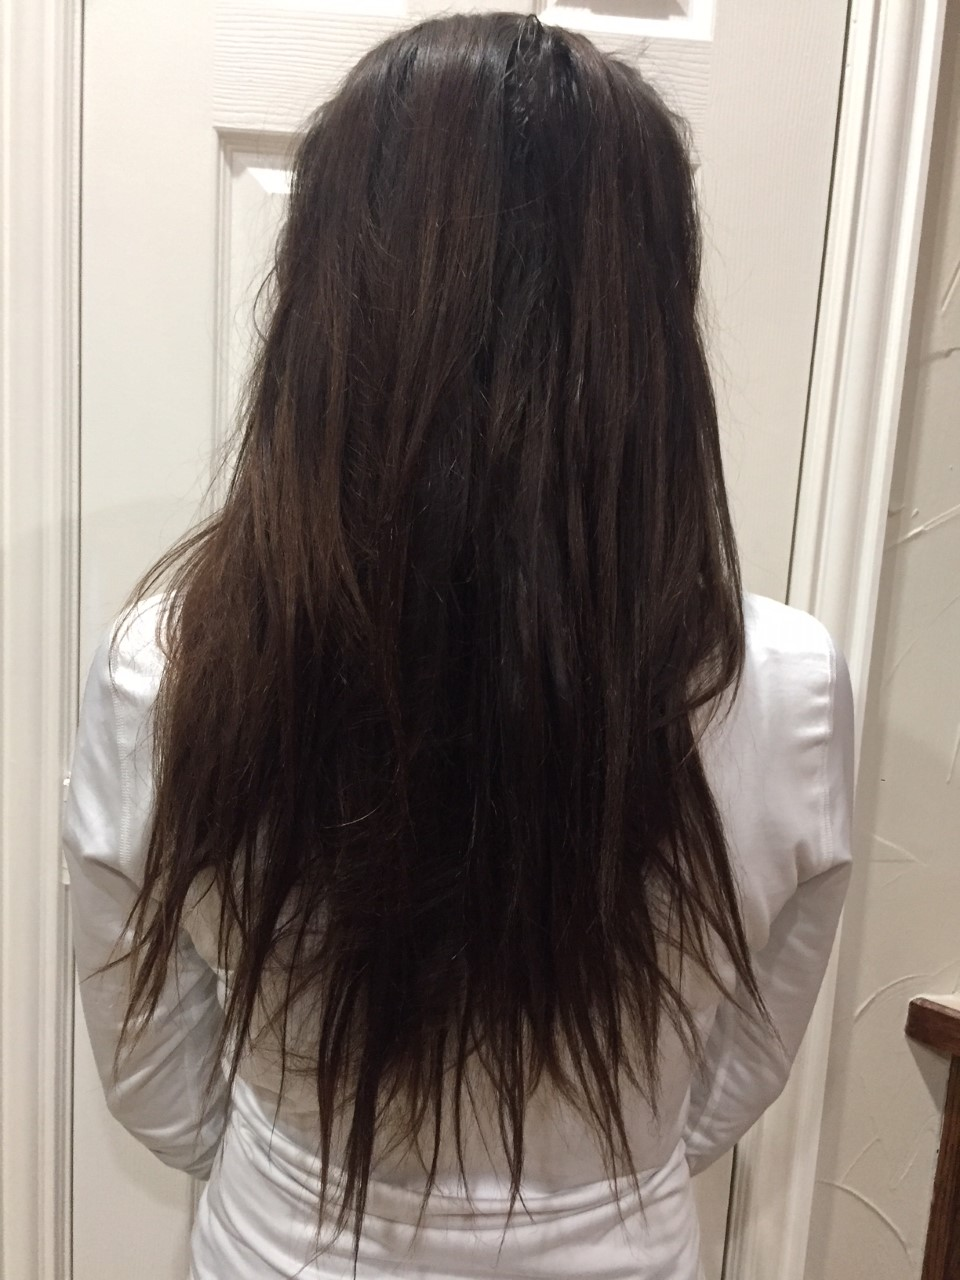 Jan 30, 2018 - Before my first hair trim of the year.I have been trying to wash my hair only every other day instead of every single day like I used to.Instead of drying my hair, I have been letting my hair air dry.I haven't colored or dyed my hair in months.